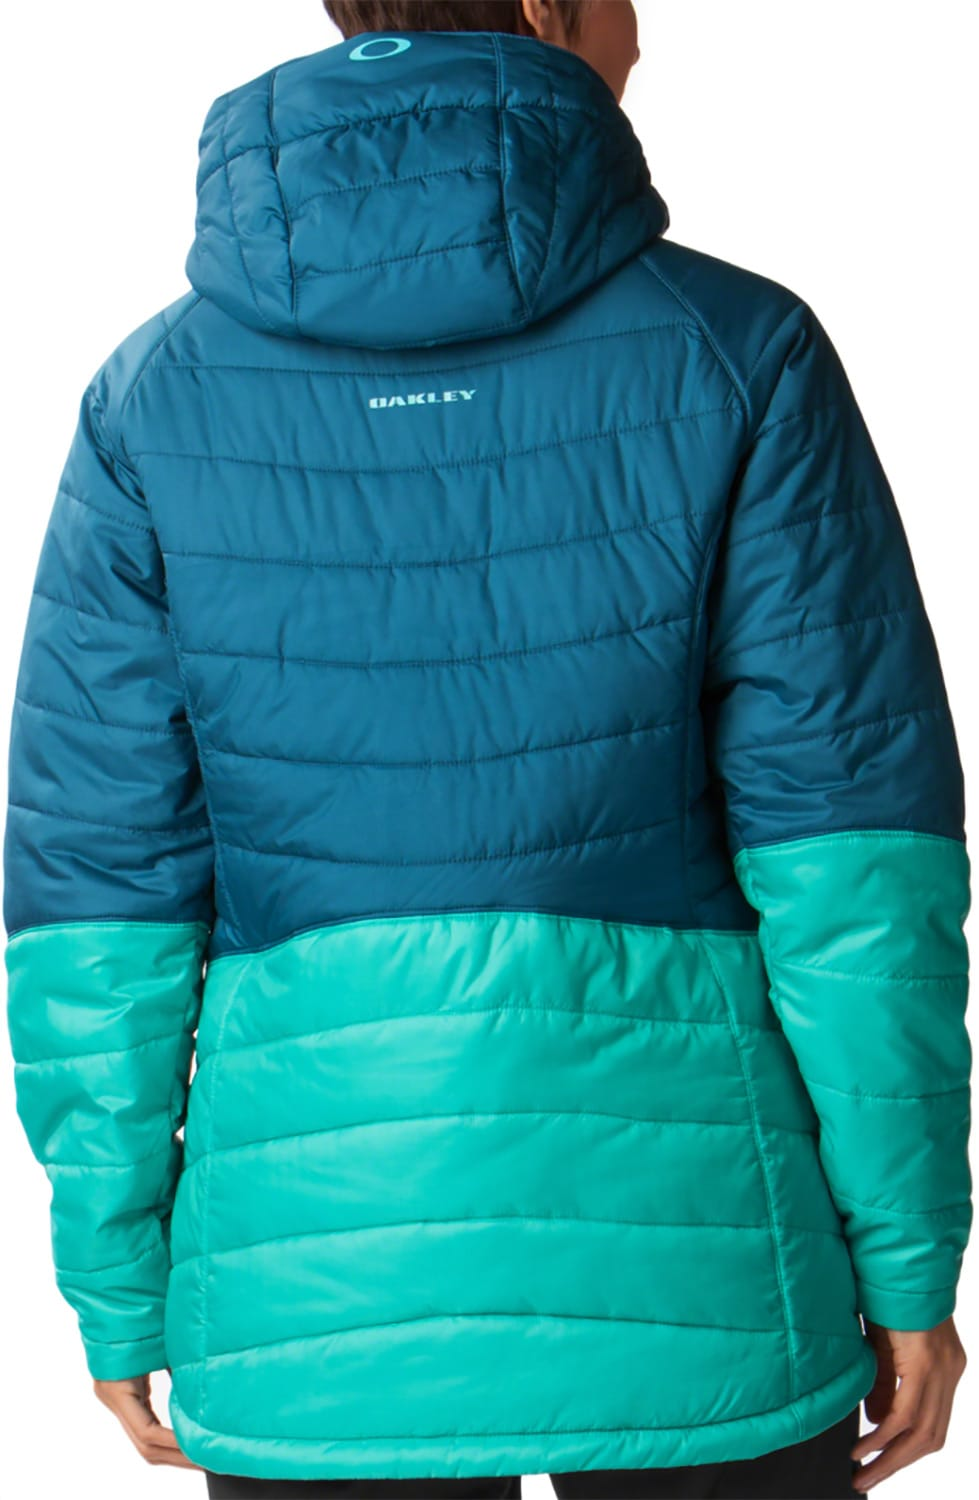 Oakley Whiskey Quilted Snowboard Jacket - thumbnail 2